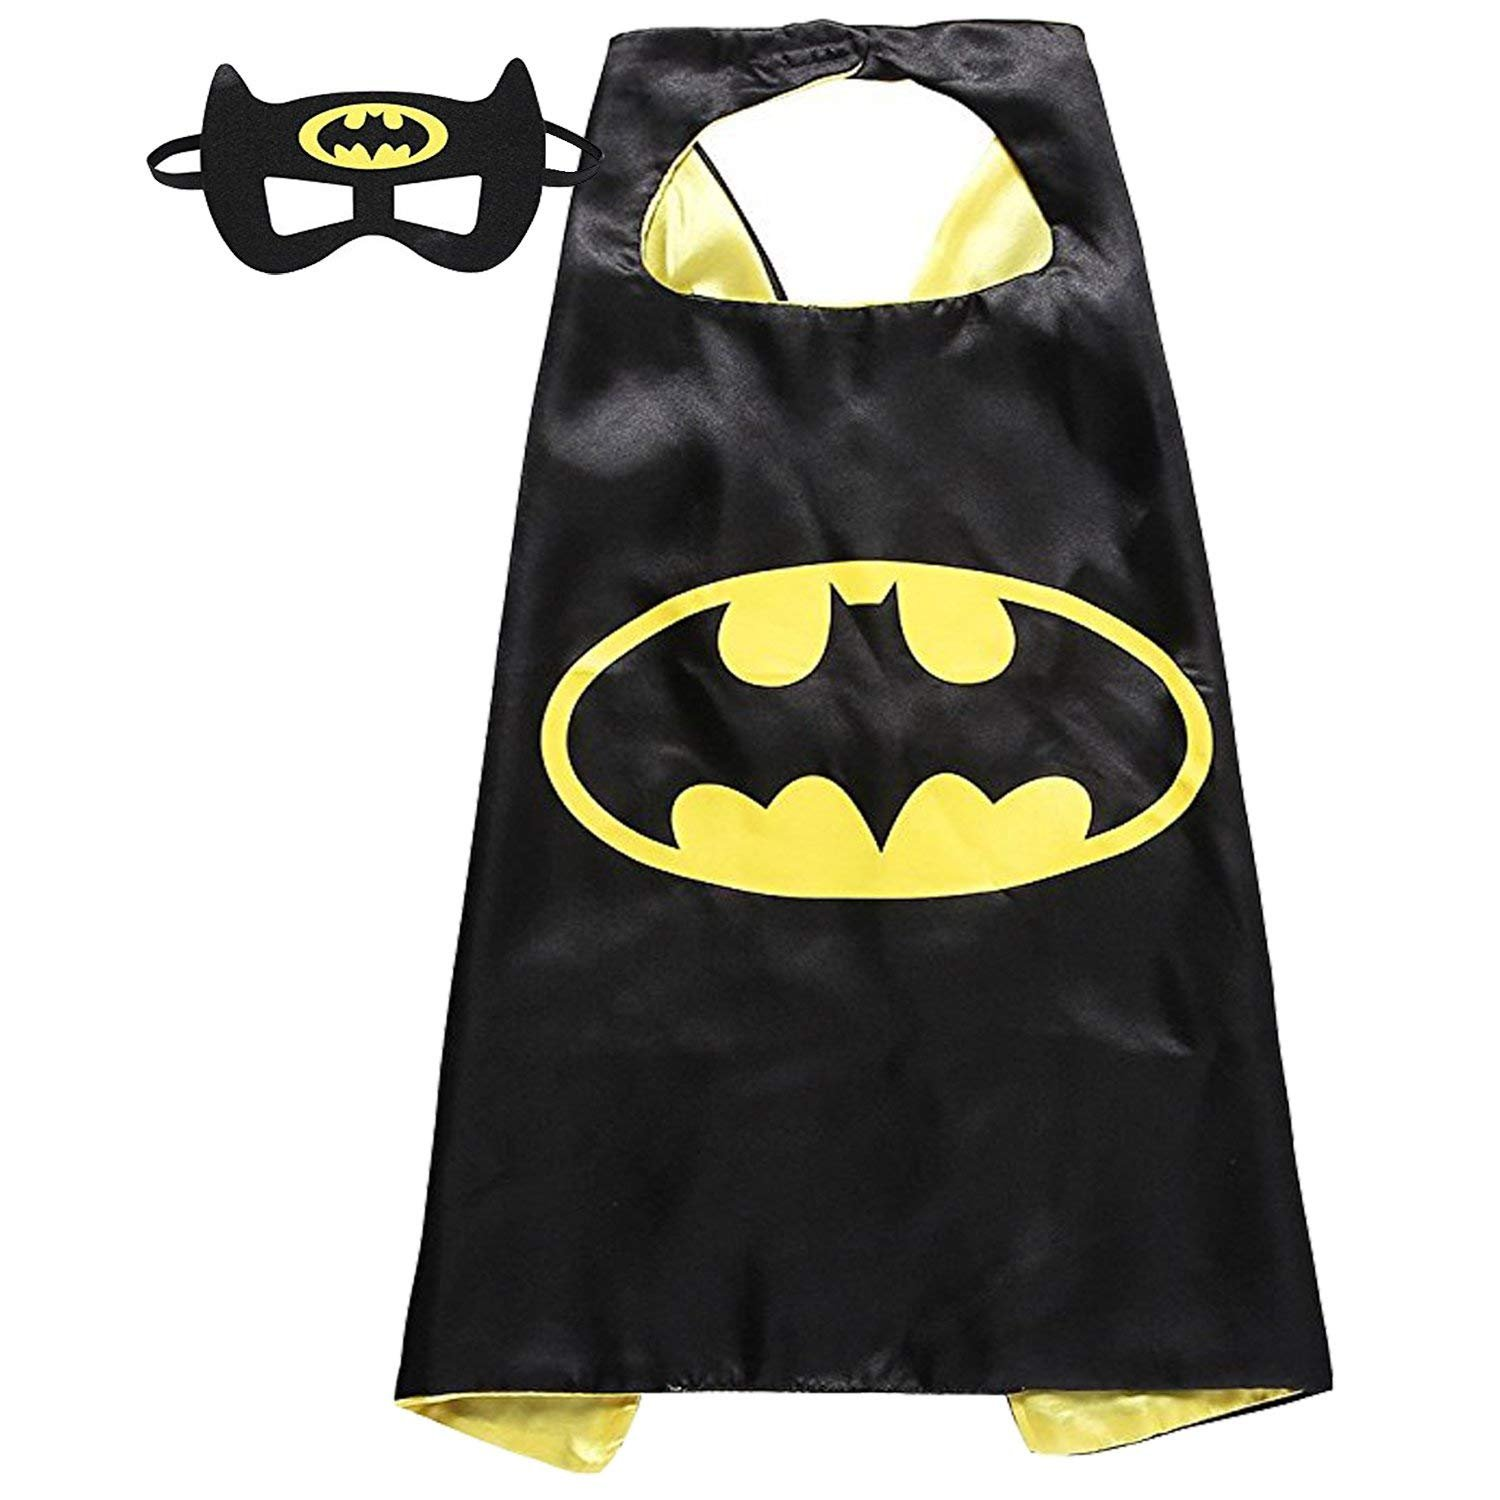 Comics Cartoon Hero Dress up Satin Capes with Felt Mask 4 Costume Sets for Kids with Bonus Stickers and Tattoo